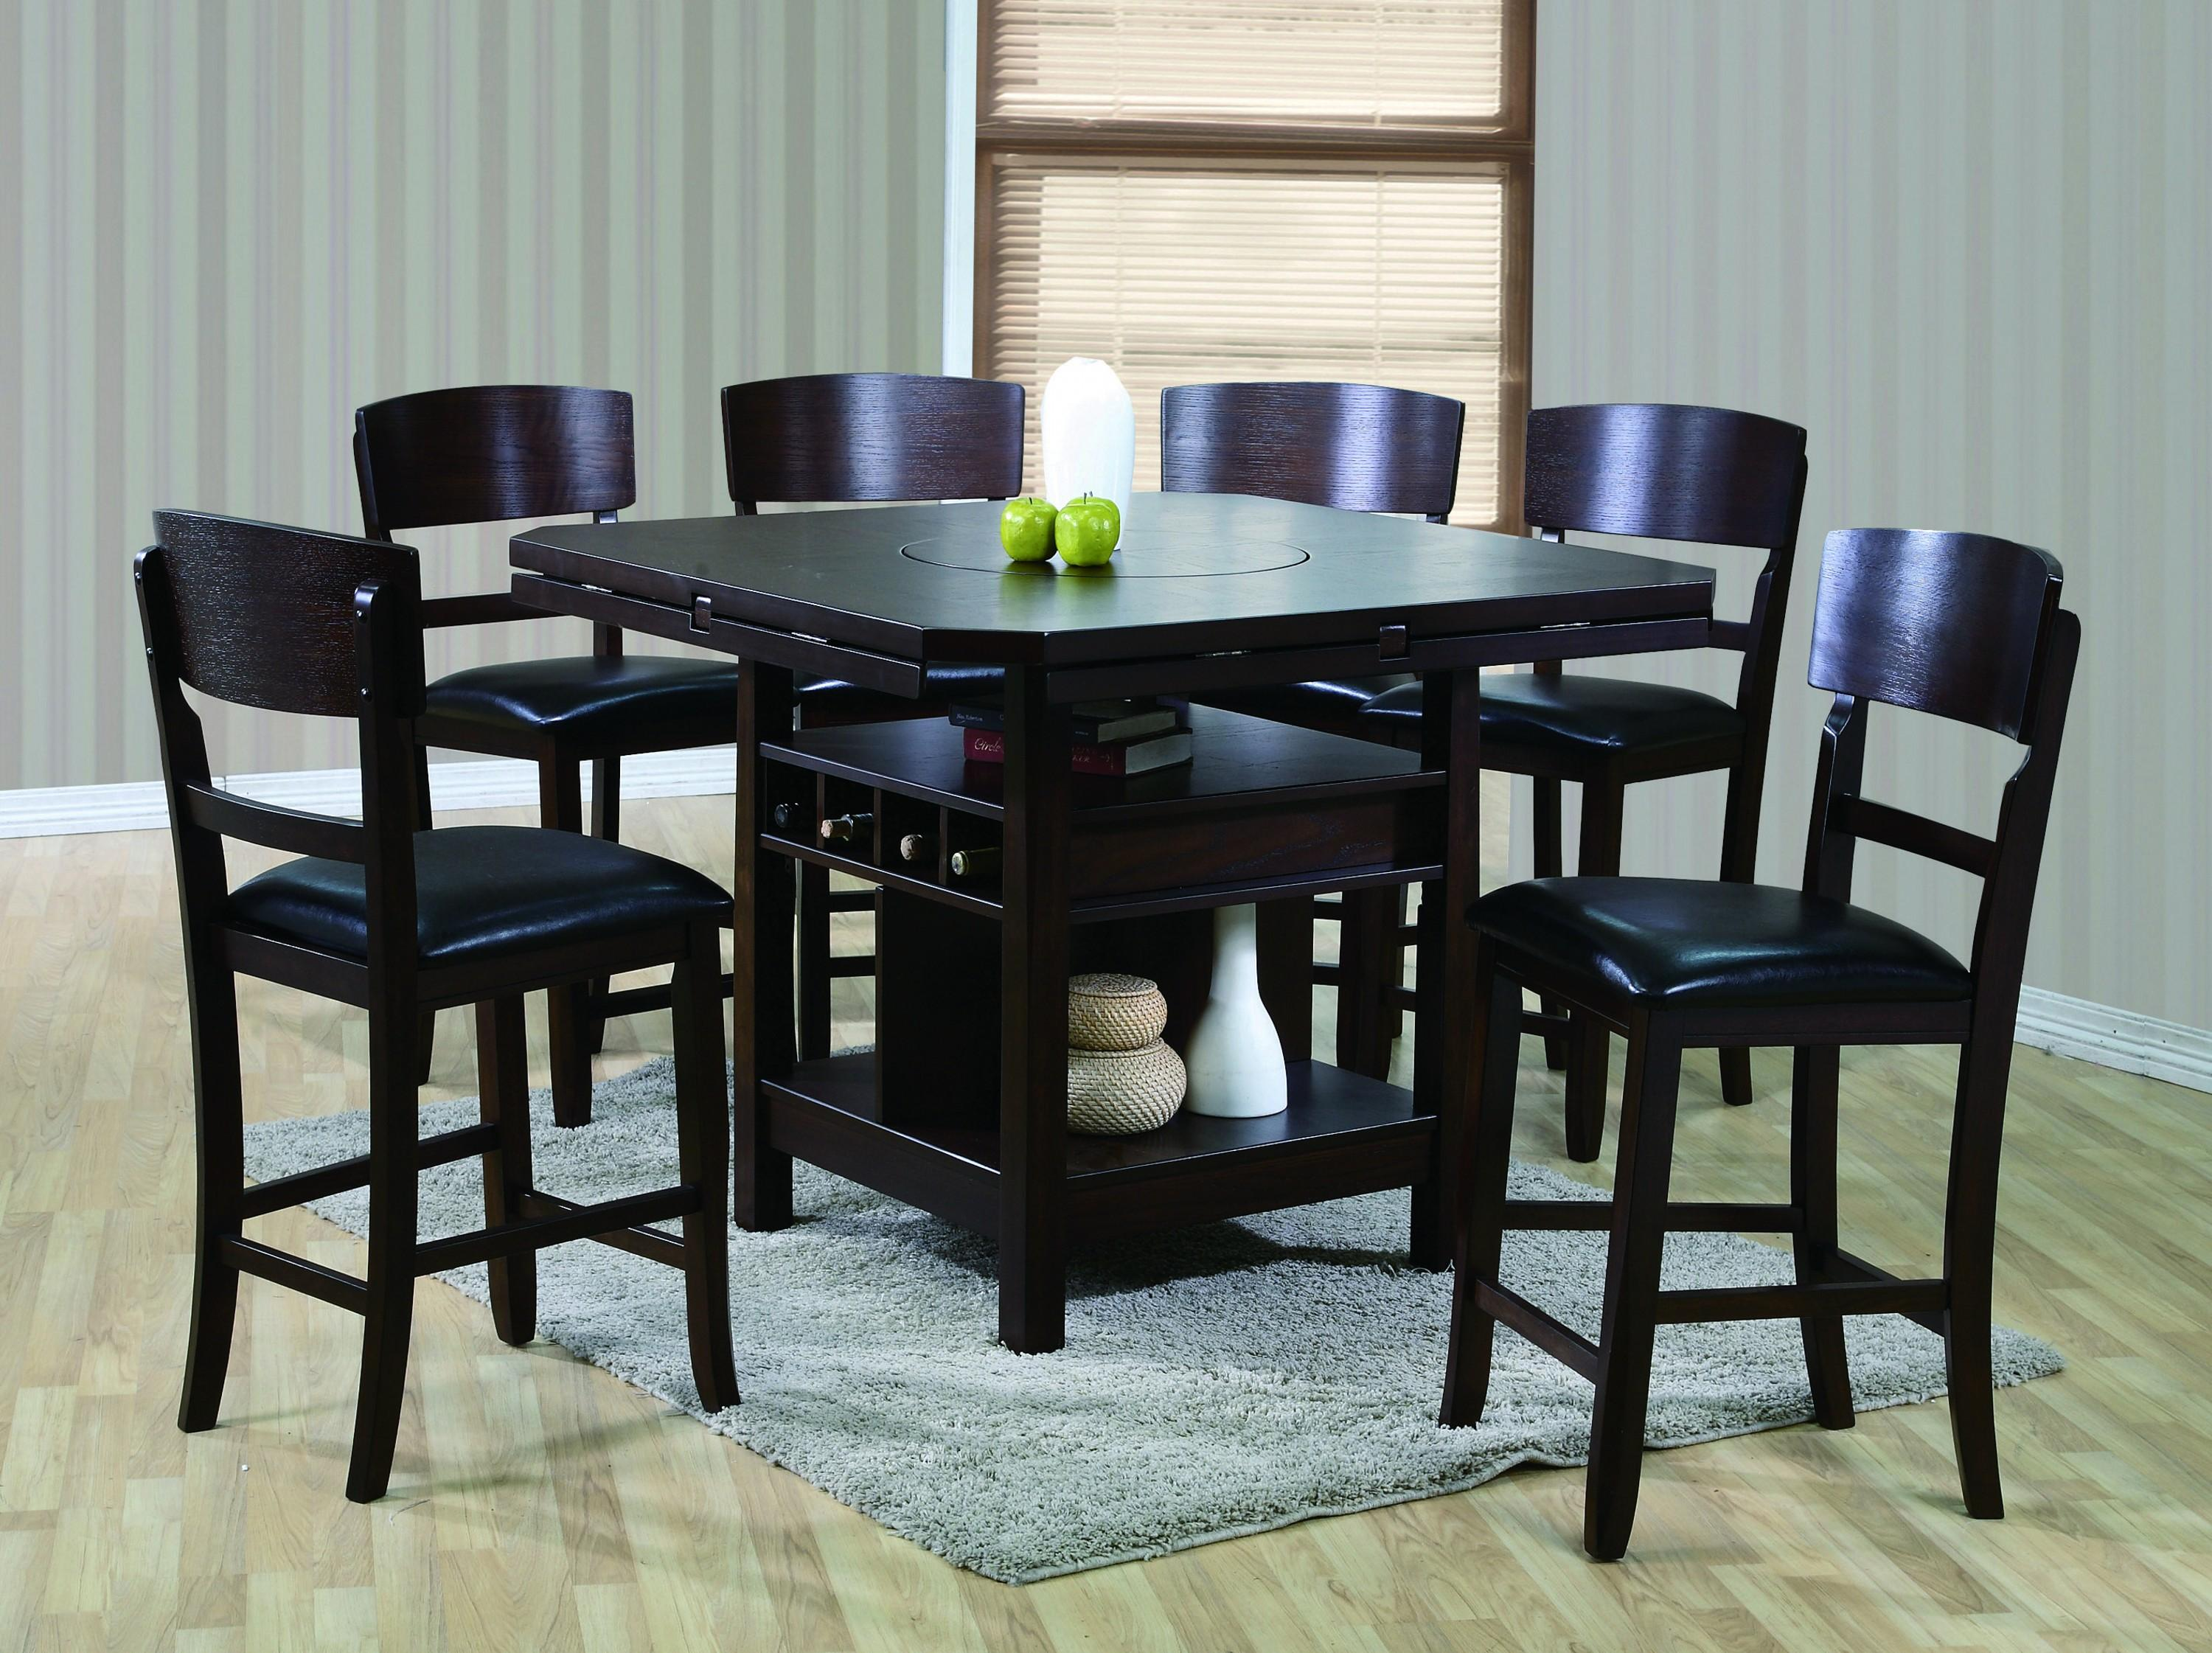 Transitional Style Counter Height Dining 7pc Set Round Table W 6 Chairs Espresso Finish 46 Square To 60